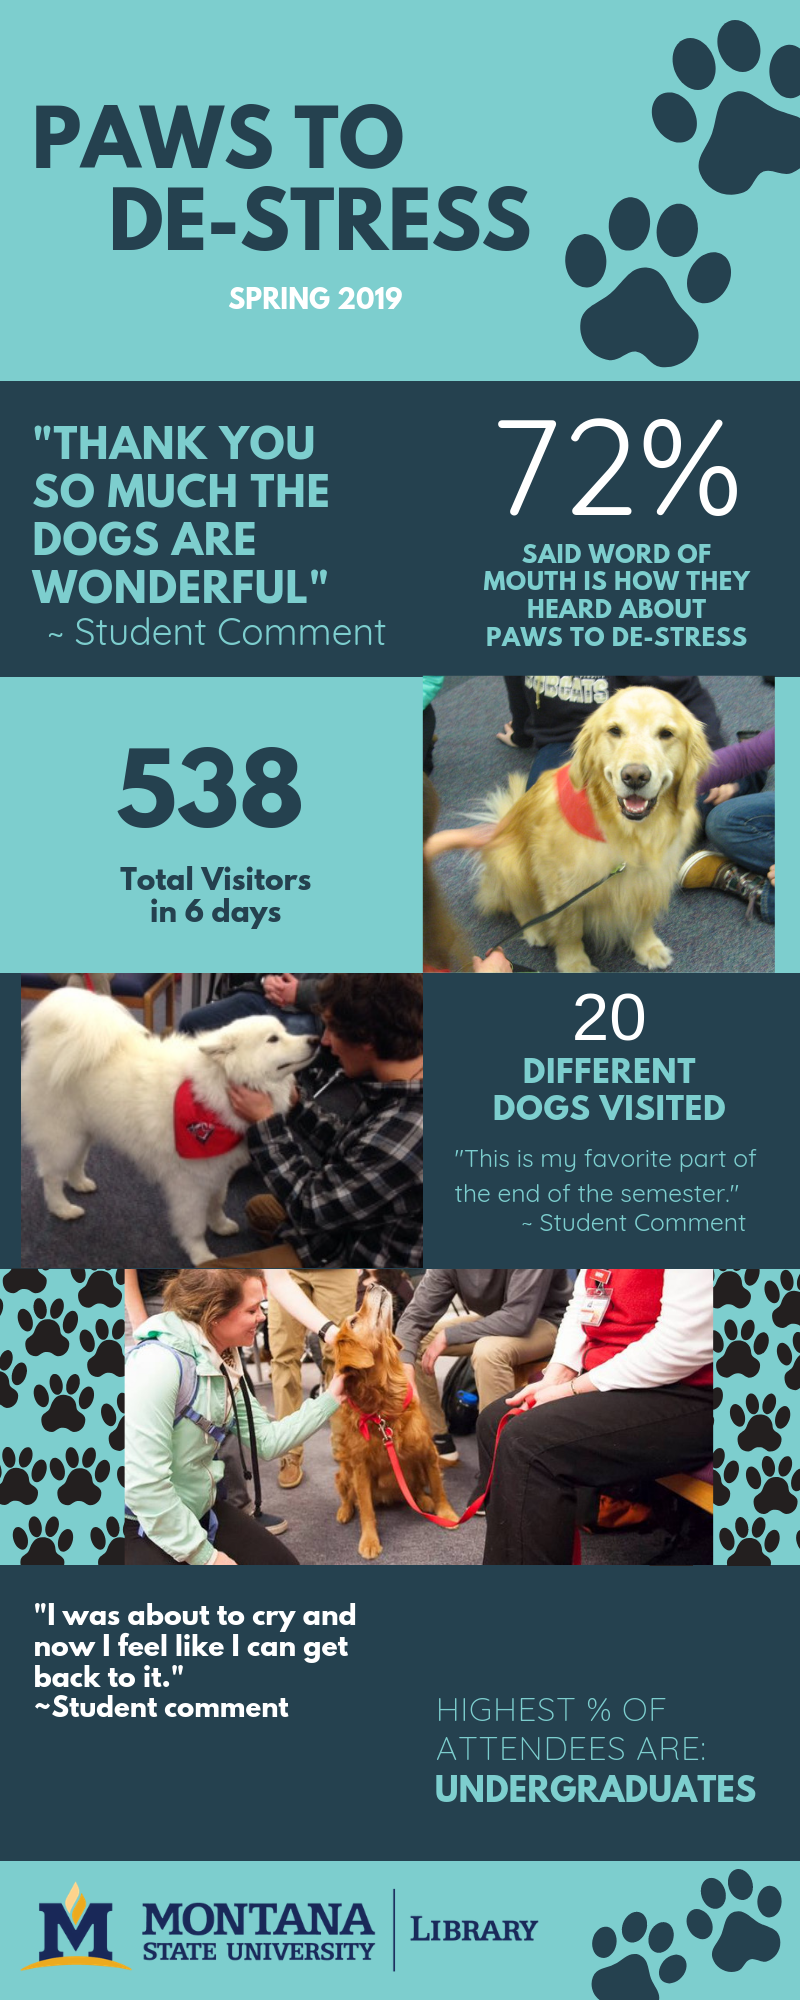 Paws to Destress infographic - Spring 2019